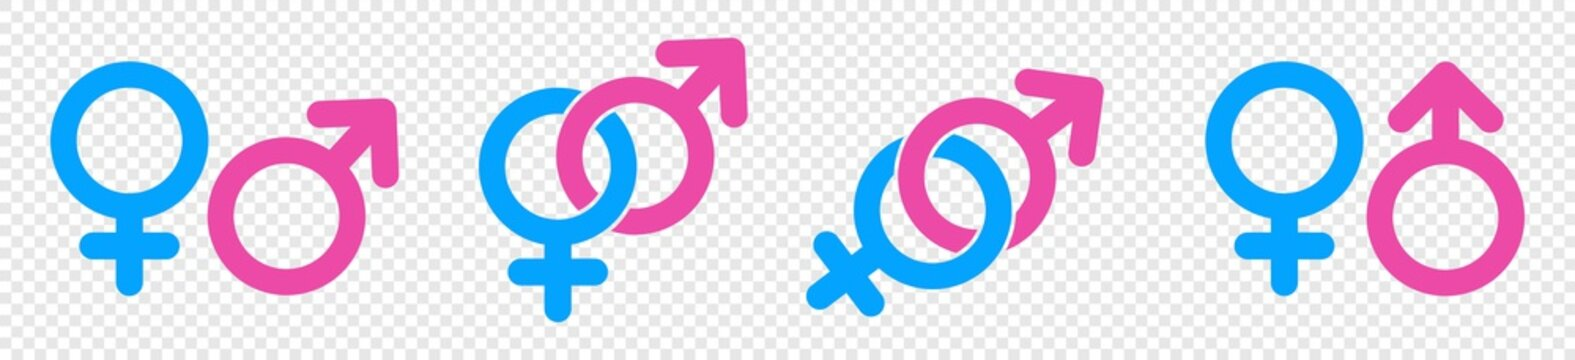 Gender icon set, Male and female sign, men and women symbol, vector illustration